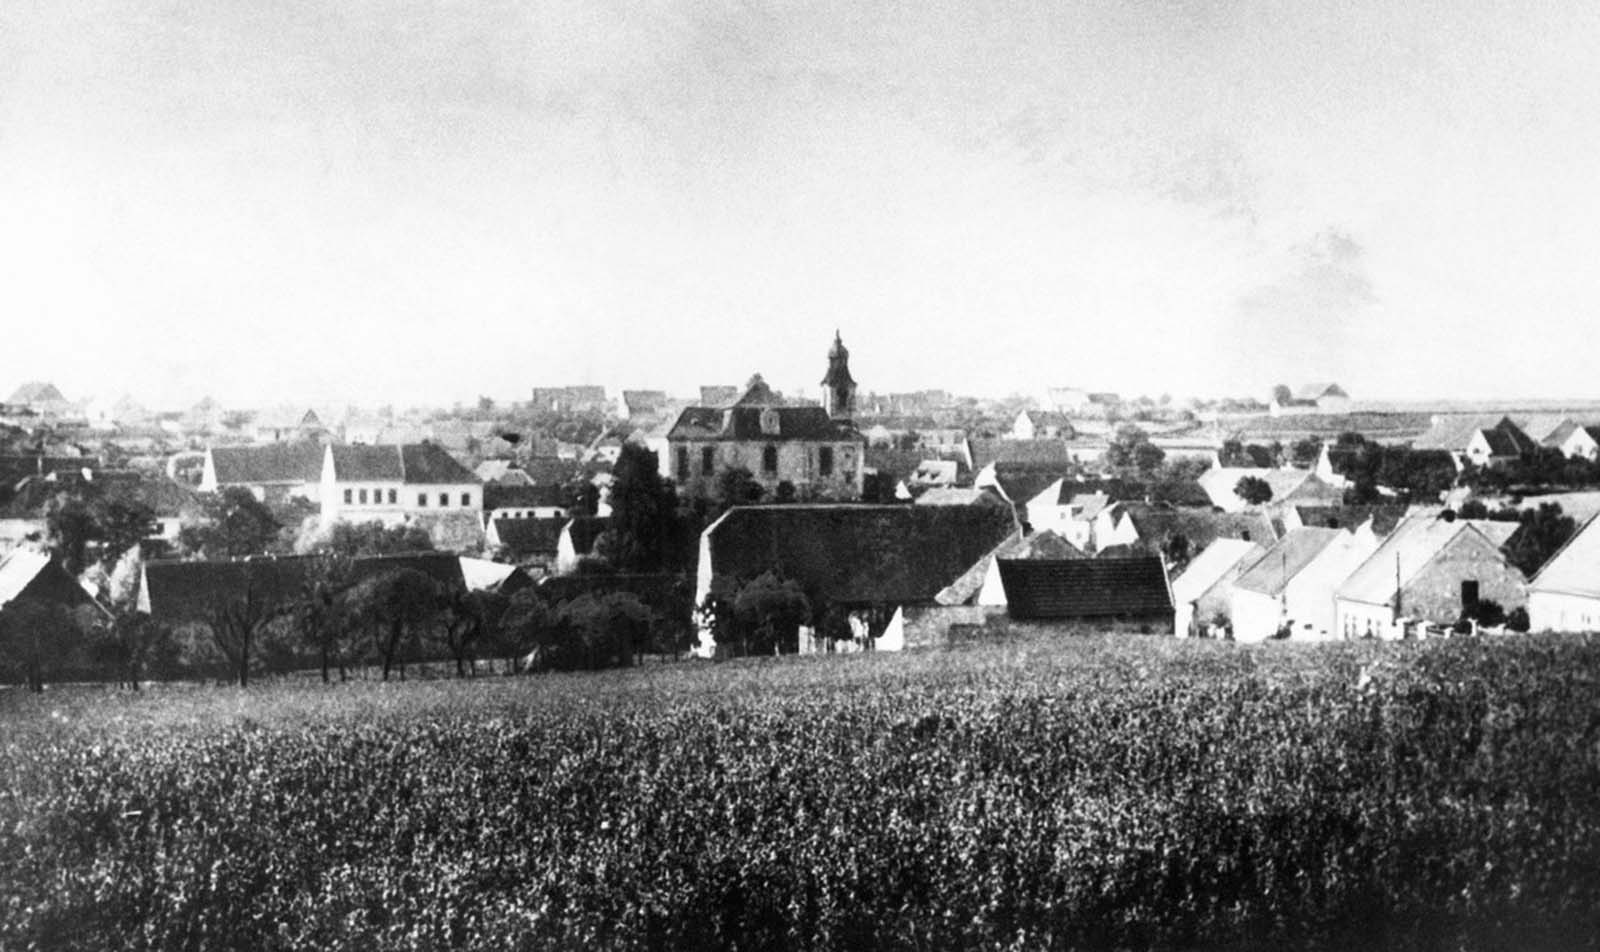 The village of Lidice, Czechoslovakia, before it was burned the ground by the Germans in 1942. On May 27, 1942, a high-ranking Nazi official named Reinhard Heydrich was assassinated, and soon after, Adolf Hitler himself reportedly ordered that any village found harboring the assassins should be leveled, all male residents executed, females shipped off to concentration camps, and acceptable children given to German families. The village of Lidice, reportedly home to Czech resistance fighters, was chosen, and Hitler's orders were carried out starting on June 10, 1942, when all 192 men over 16 years of age were executed.